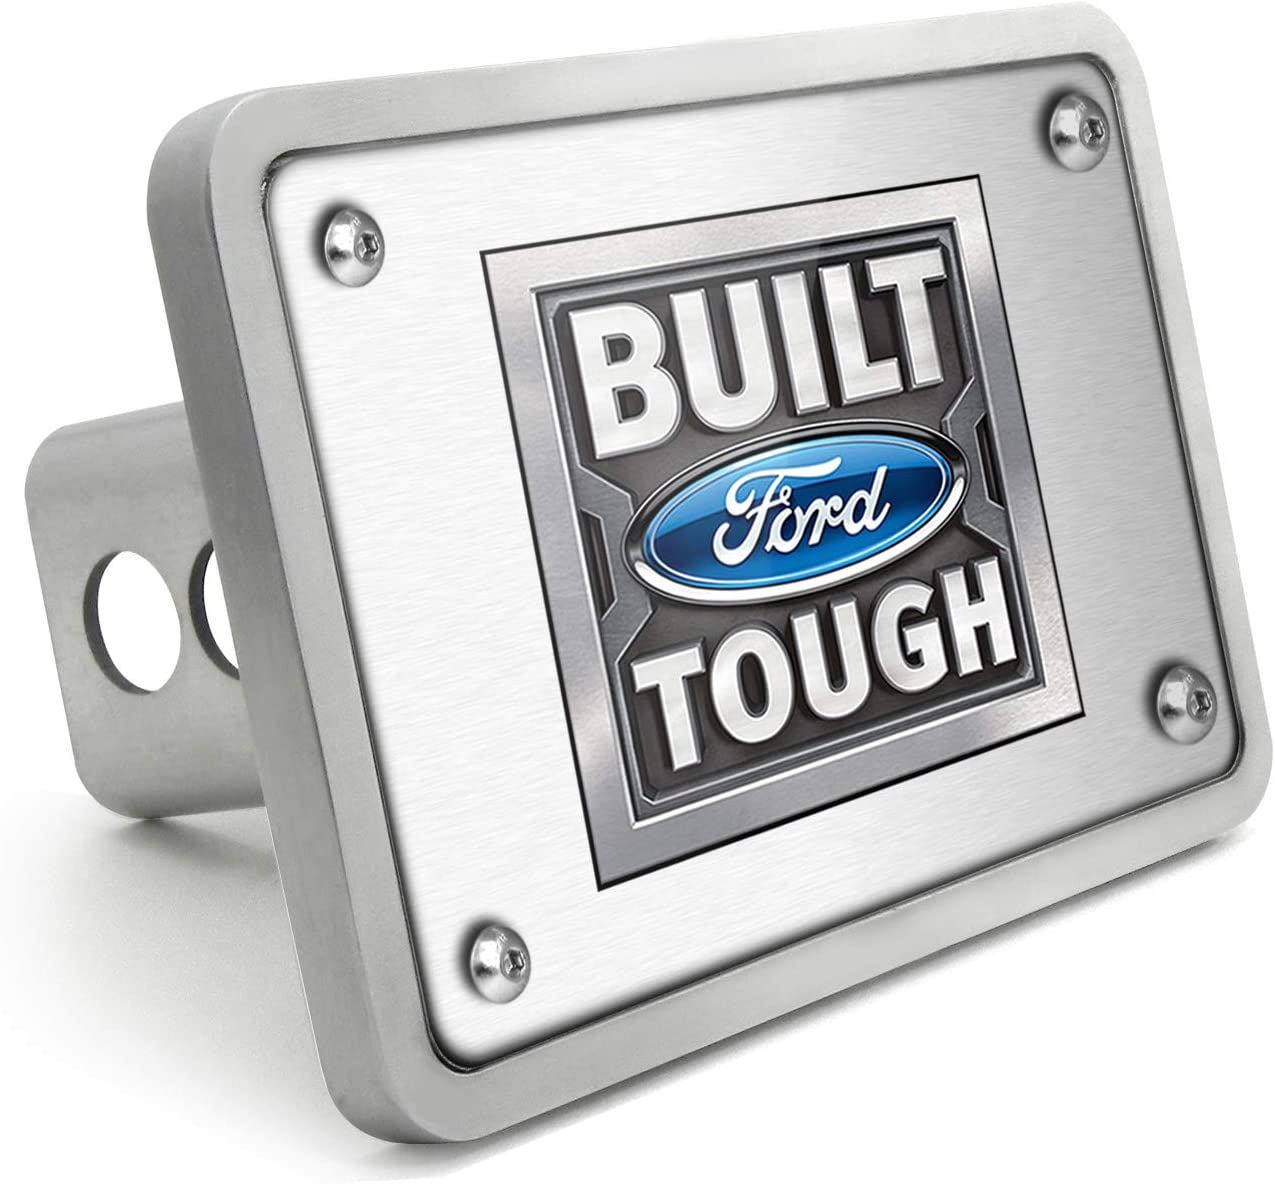 iPick Image Ford Built Ford Tough UV Graphic Brushed Silver Billet Aluminum 2 inch Tow Hitch Cover for F-150 Made in USA Super-Duty and SUV